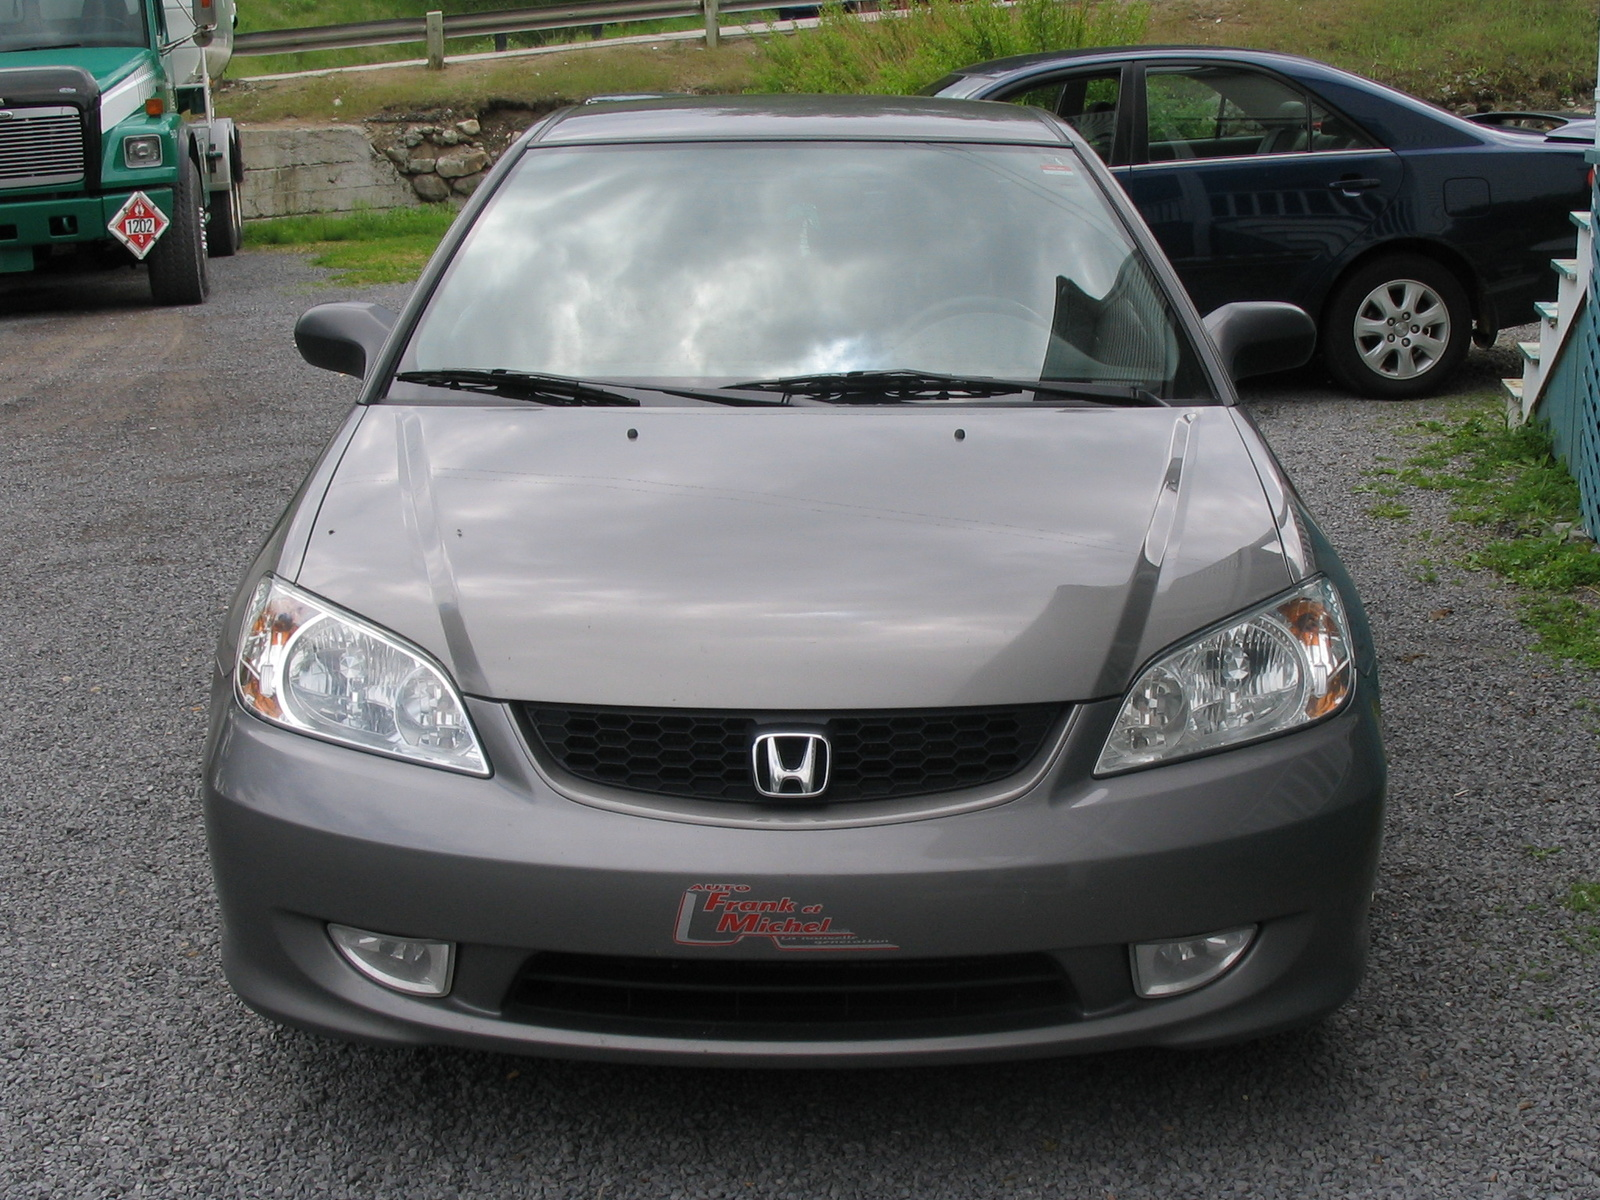 2007 honda civic coupe ex picture. Black Bedroom Furniture Sets. Home Design Ideas